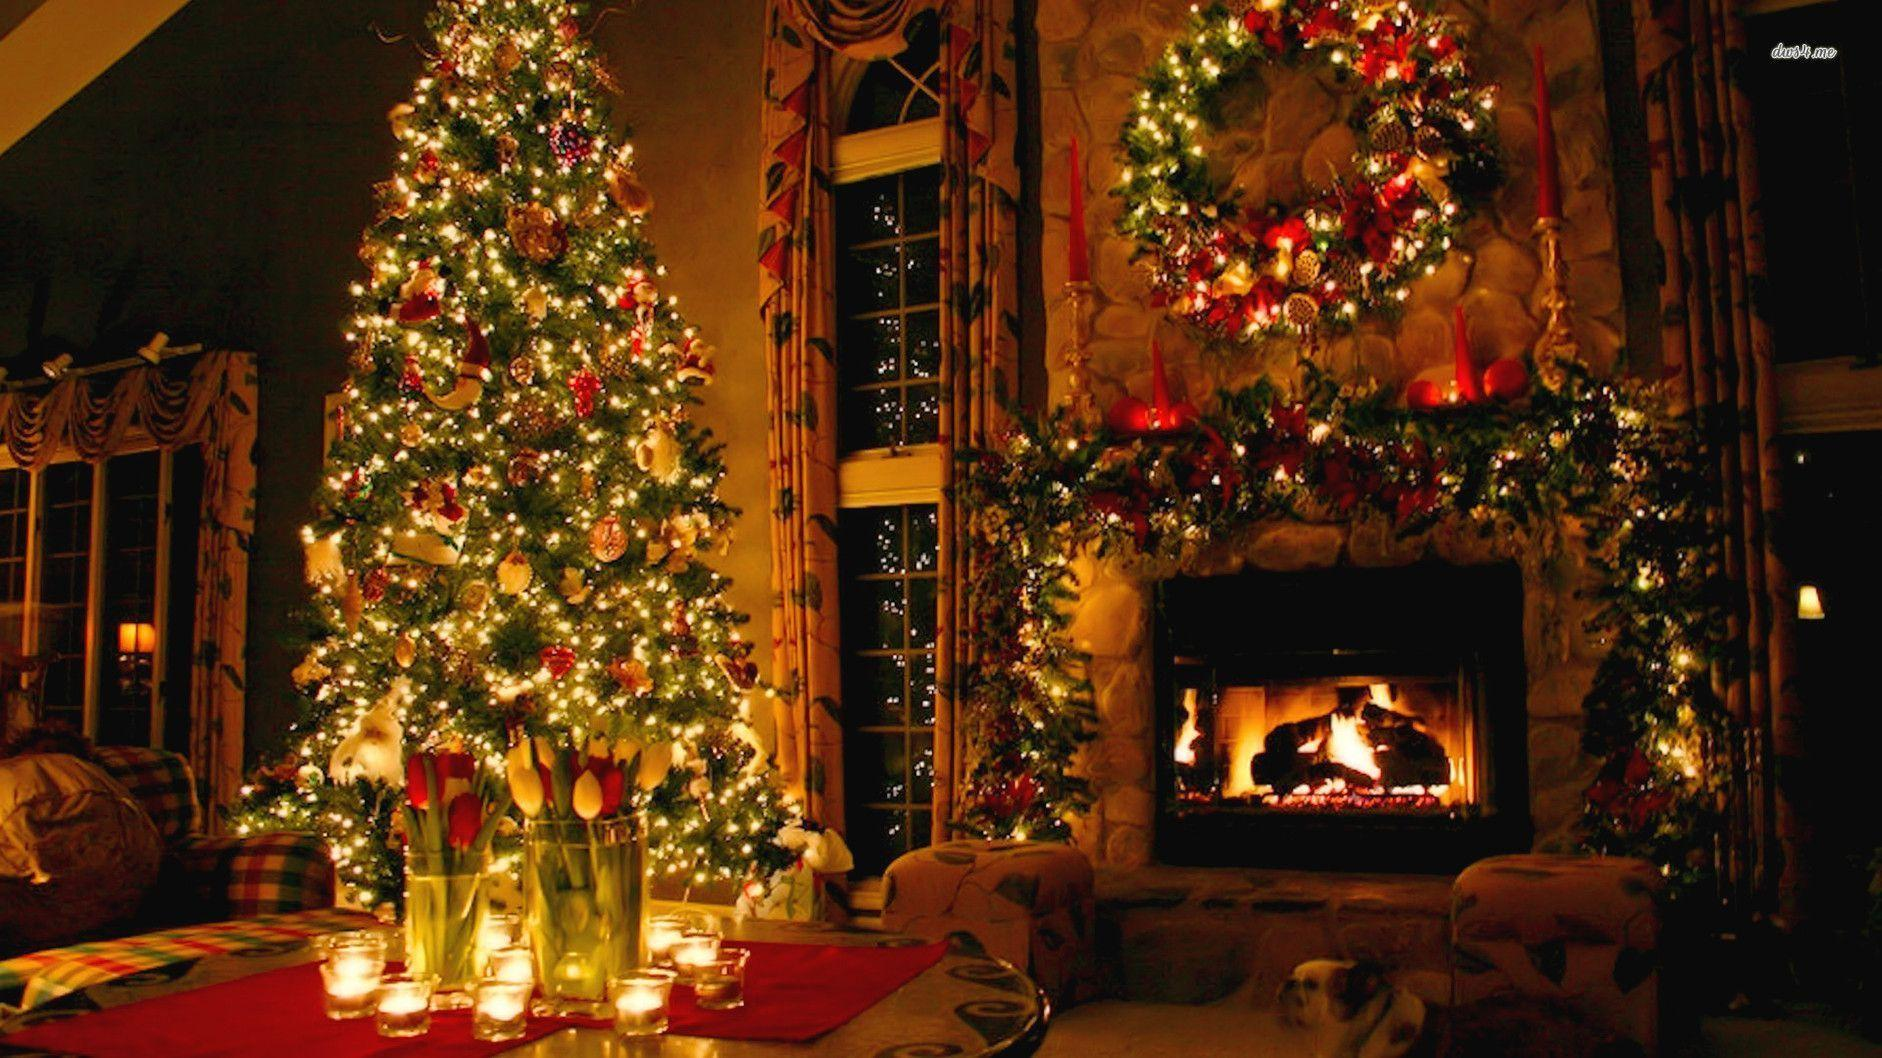 Christmas fireplace backgrounds wallpaper cave for Home decorations ideas for free